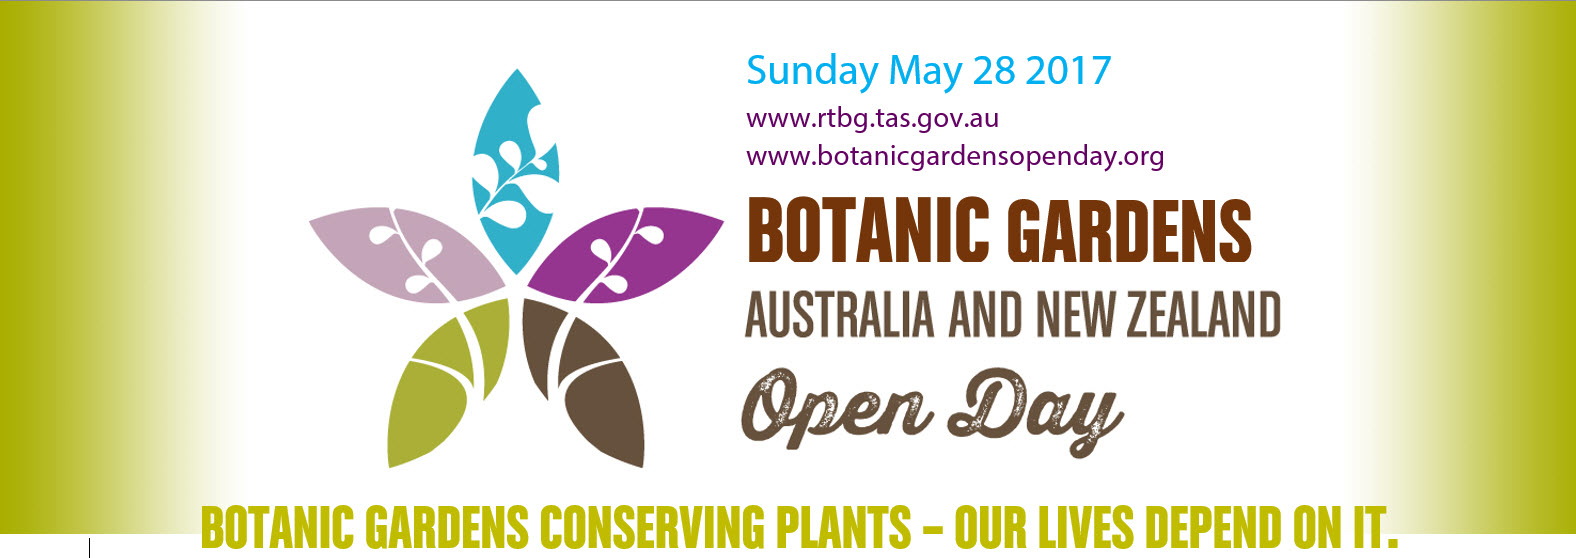 BGANZ-Open-day-RTBG-website-banner